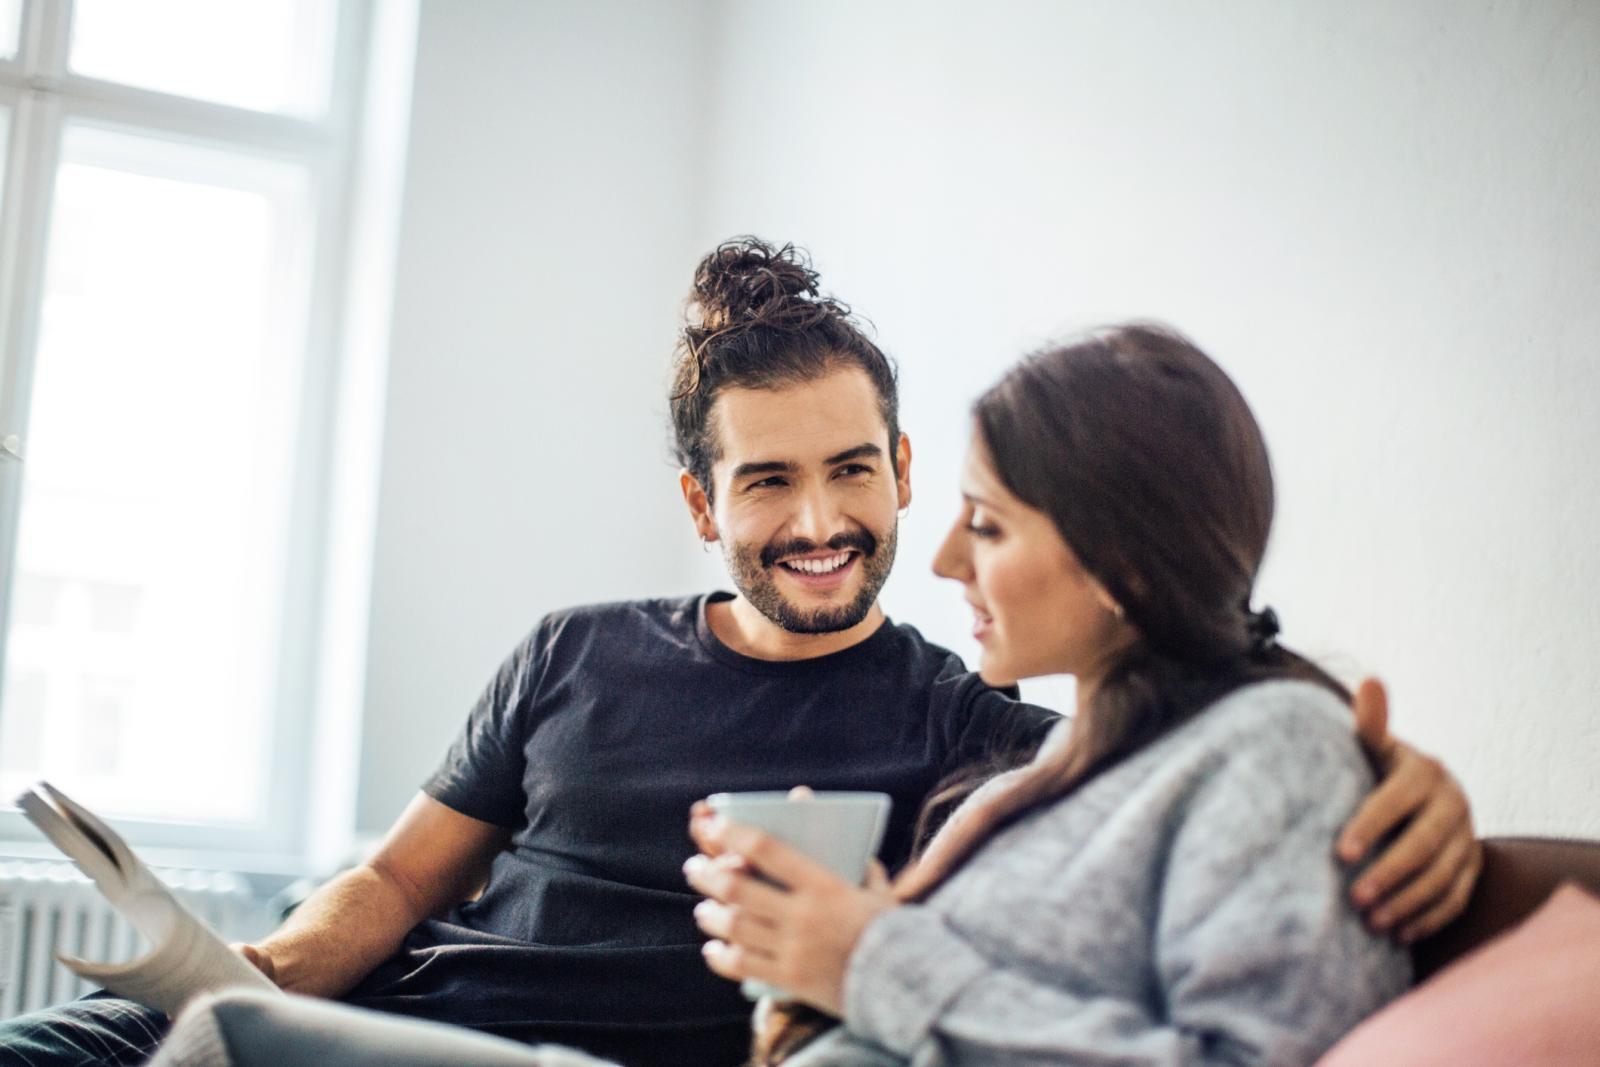 Man holding a book while looking at woman having coffee